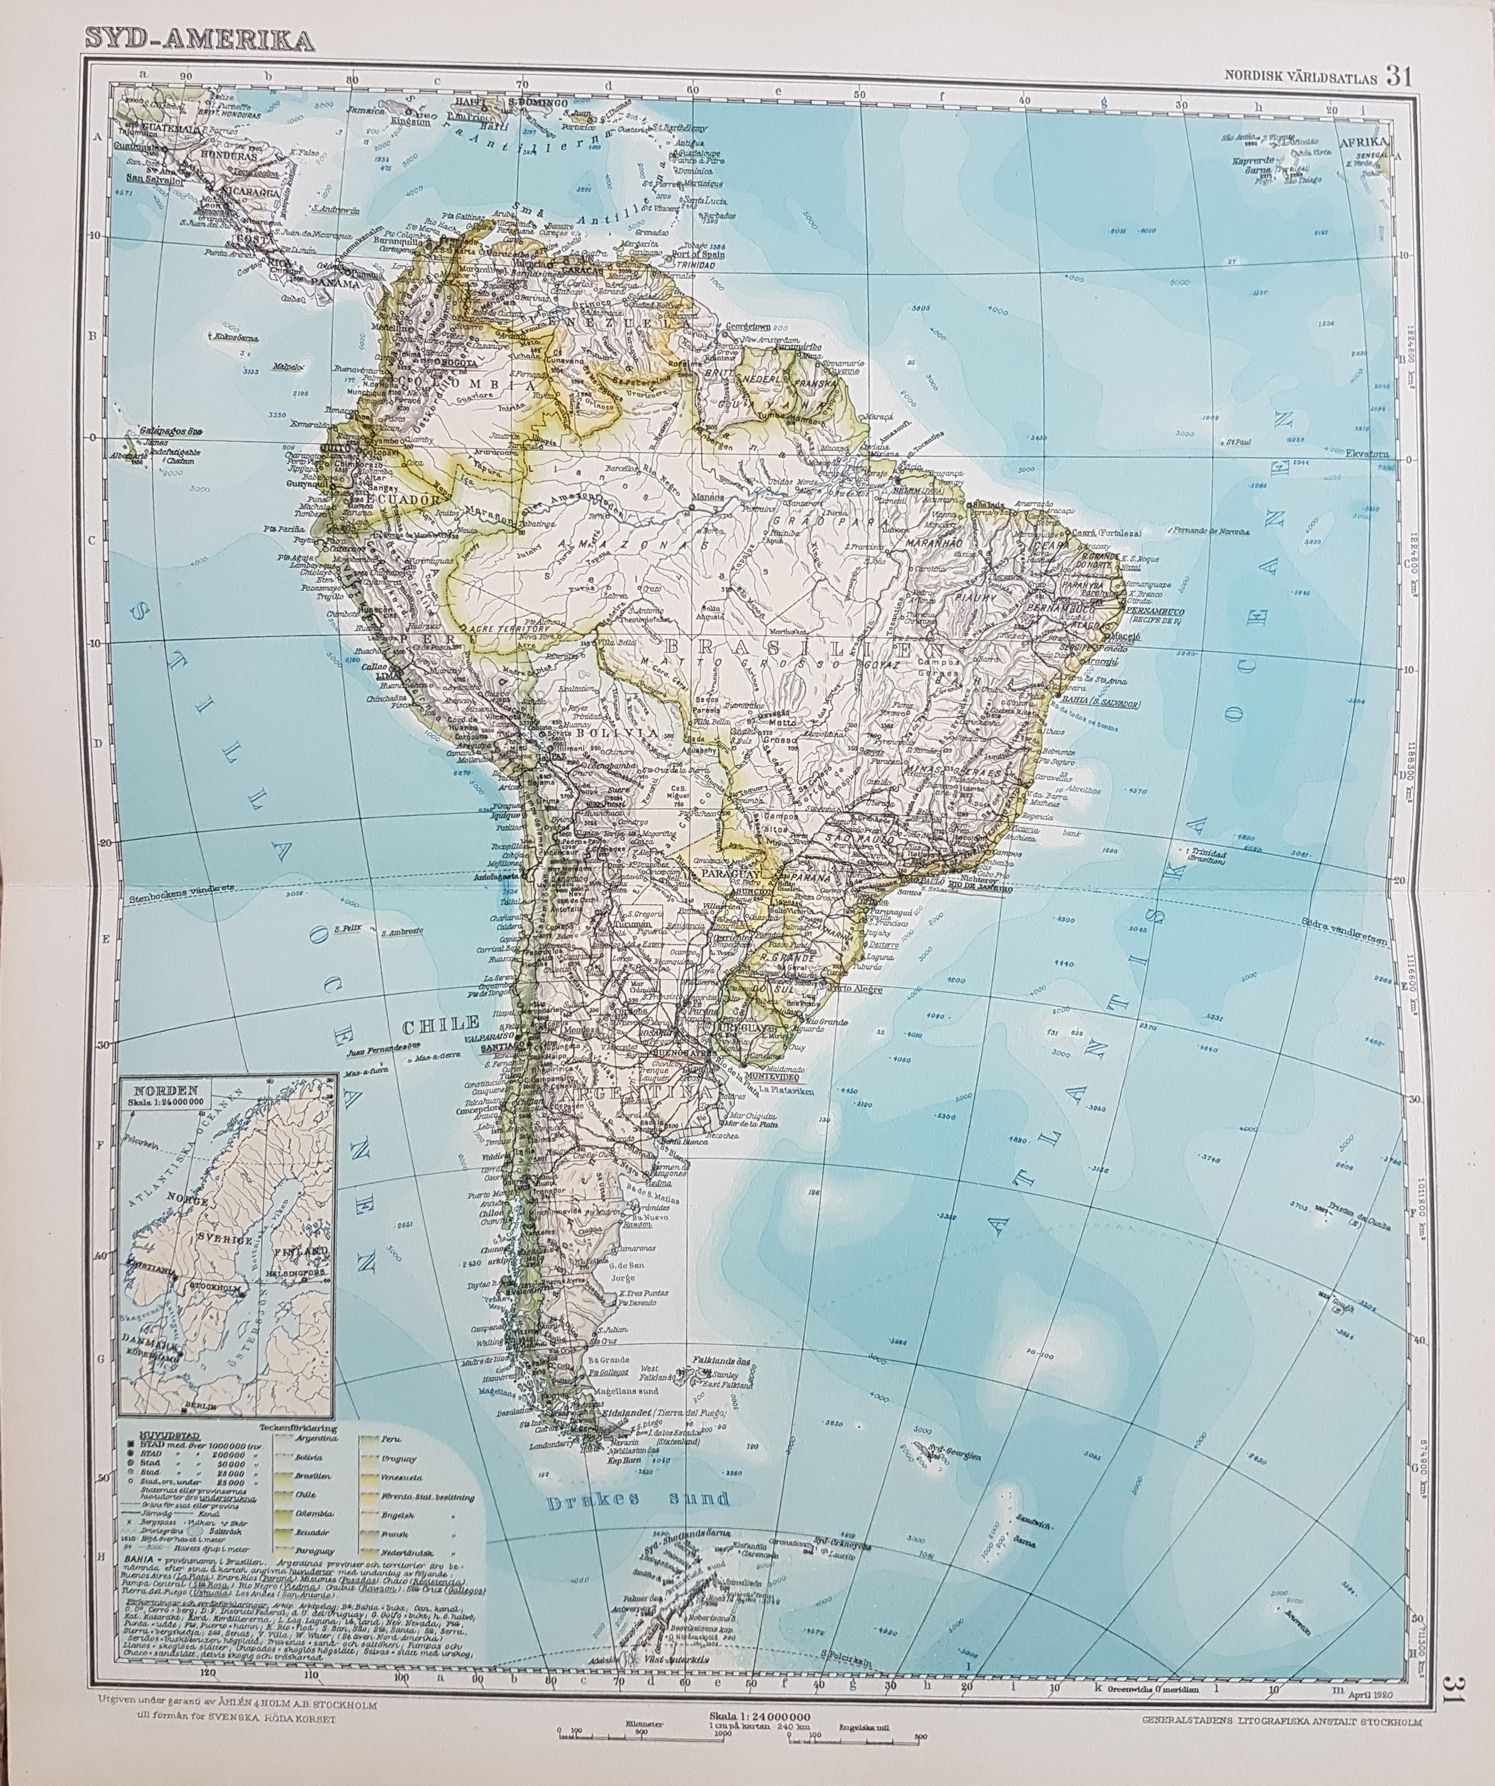 antique maps for sale printed 1926 displays geography in beautiful colors the text